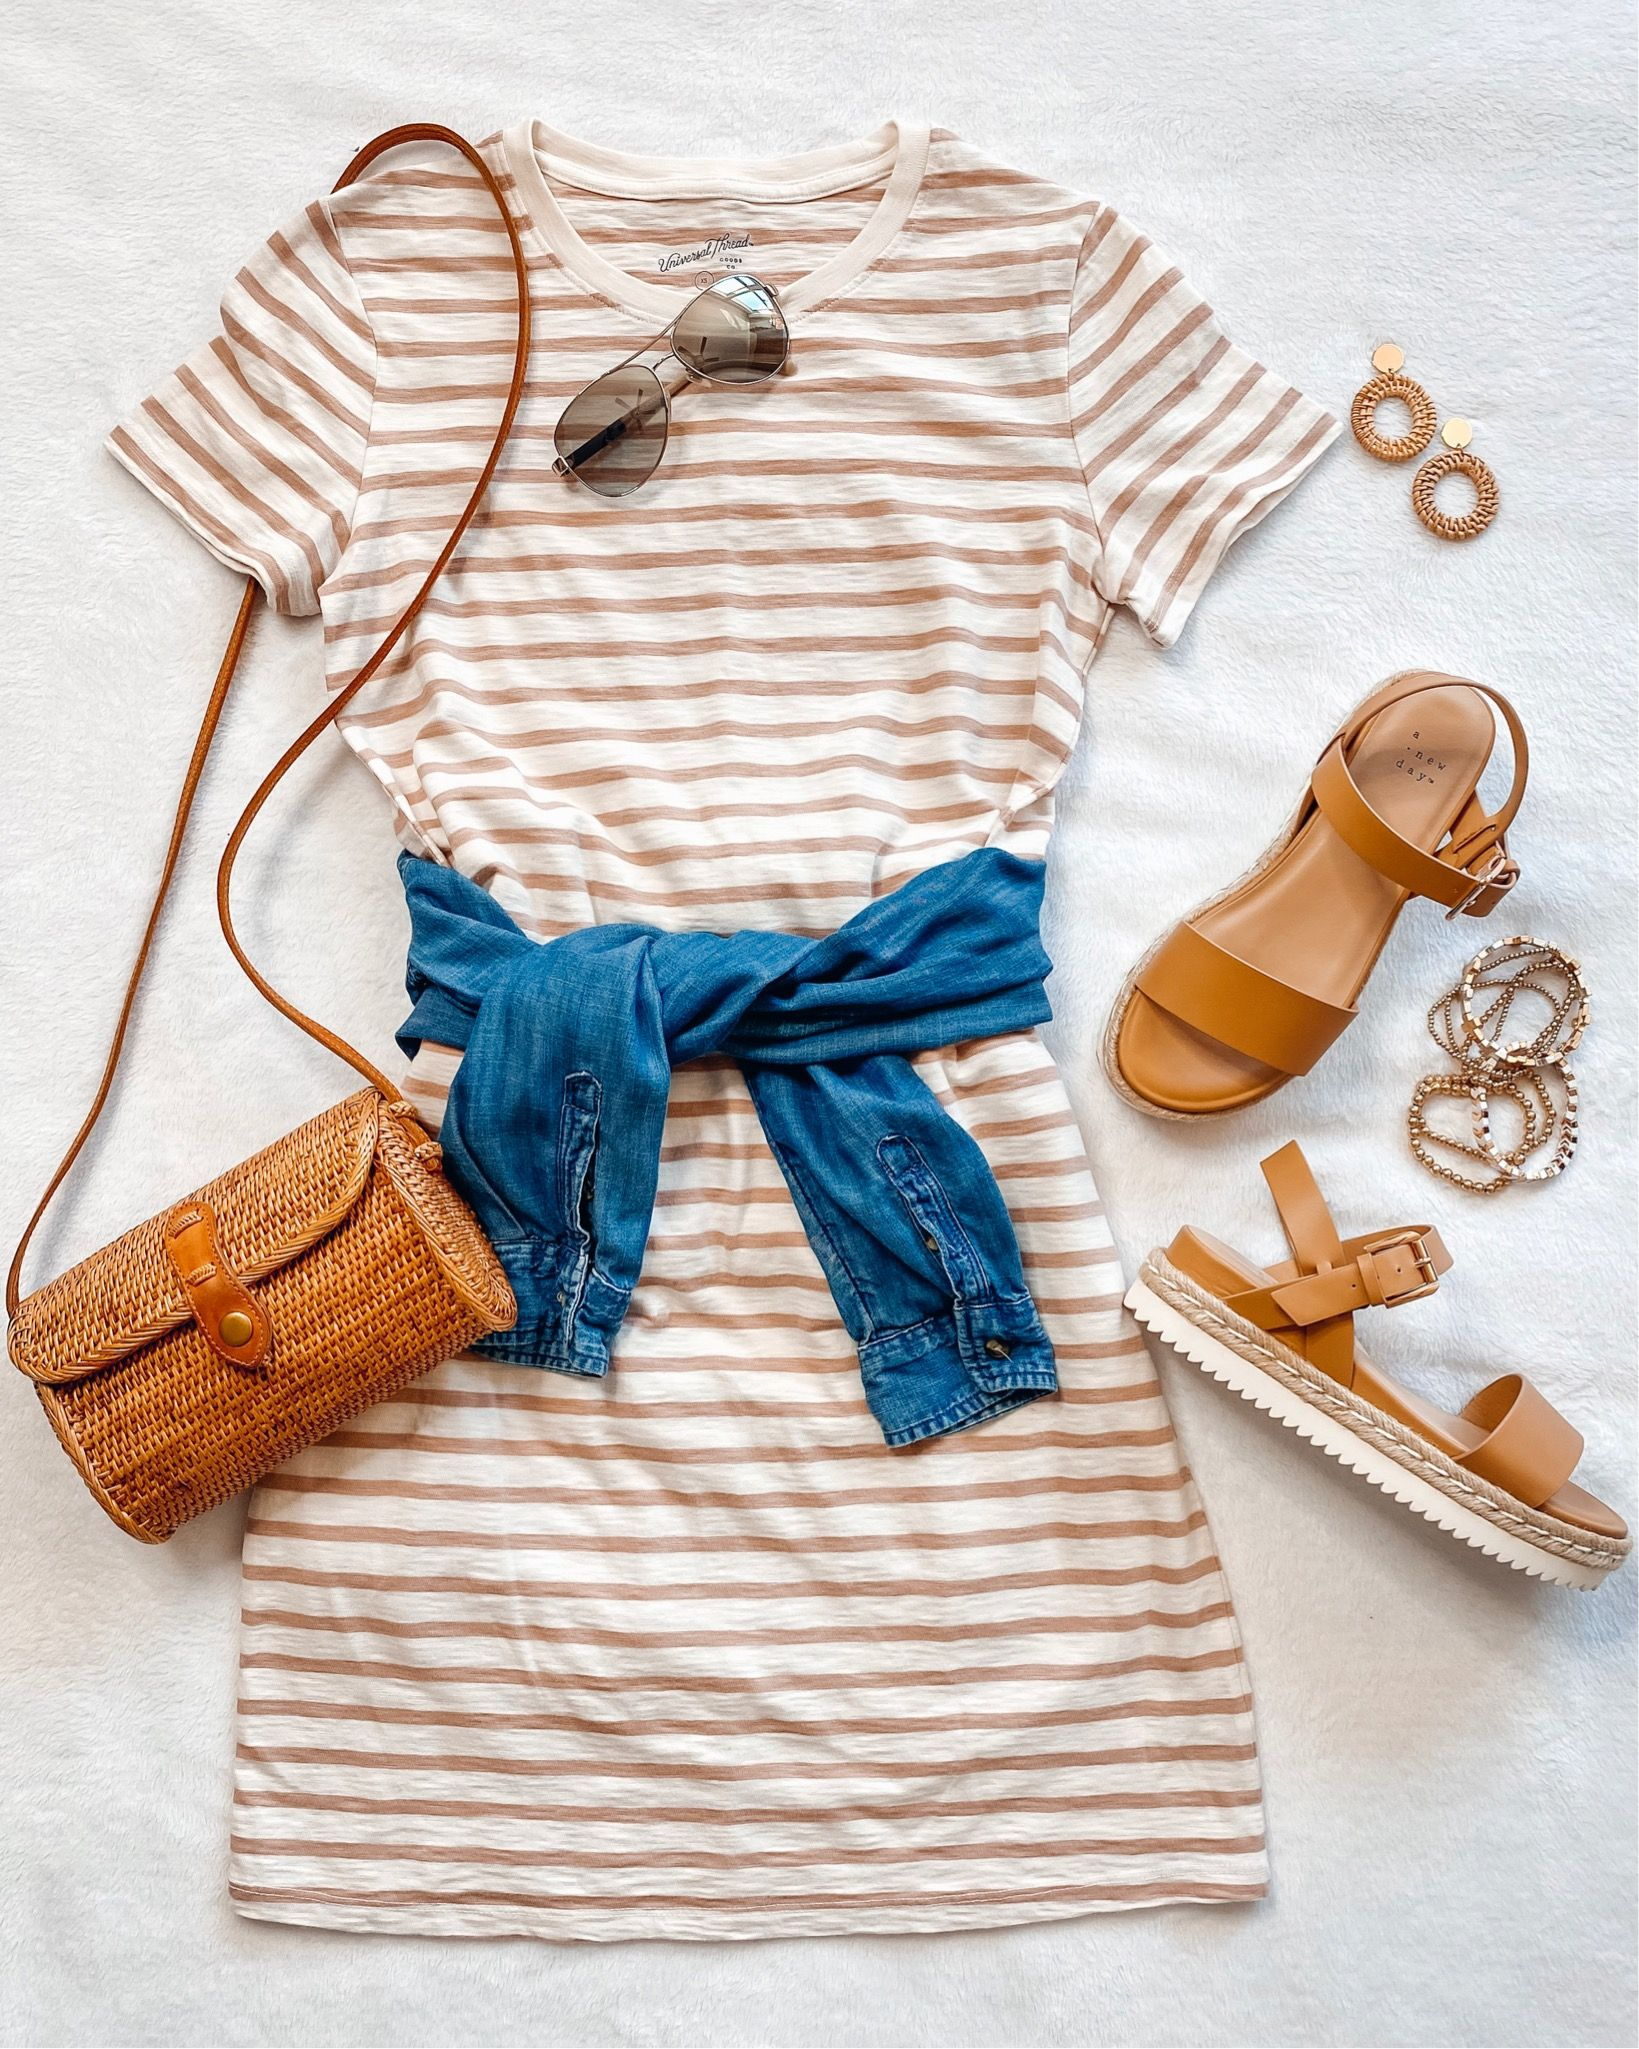 Target style casual outfit idea affordable fashion spring summer SHOP MY INSTAGRAM - Everyday Holly